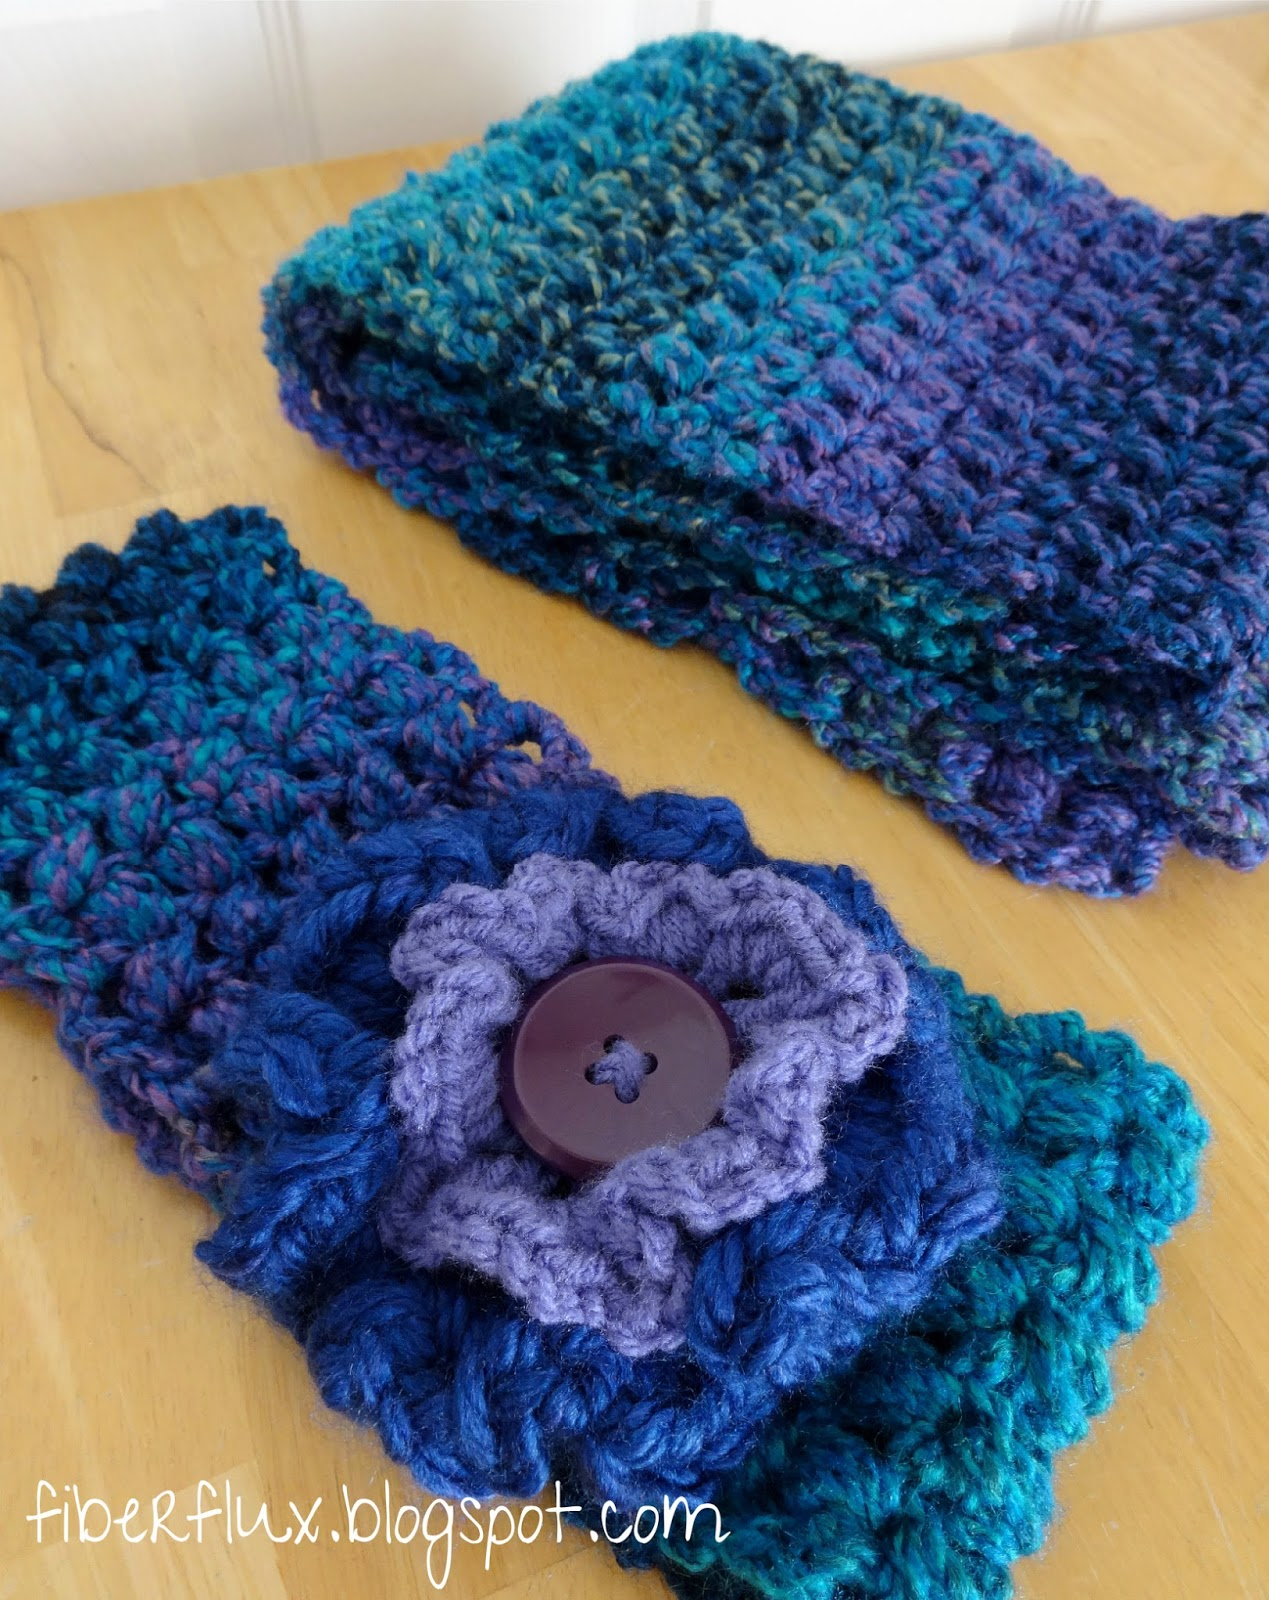 Fiber Flux: Free Crochet Pattern...Tweedy Puff Stitch Ear Warmer!